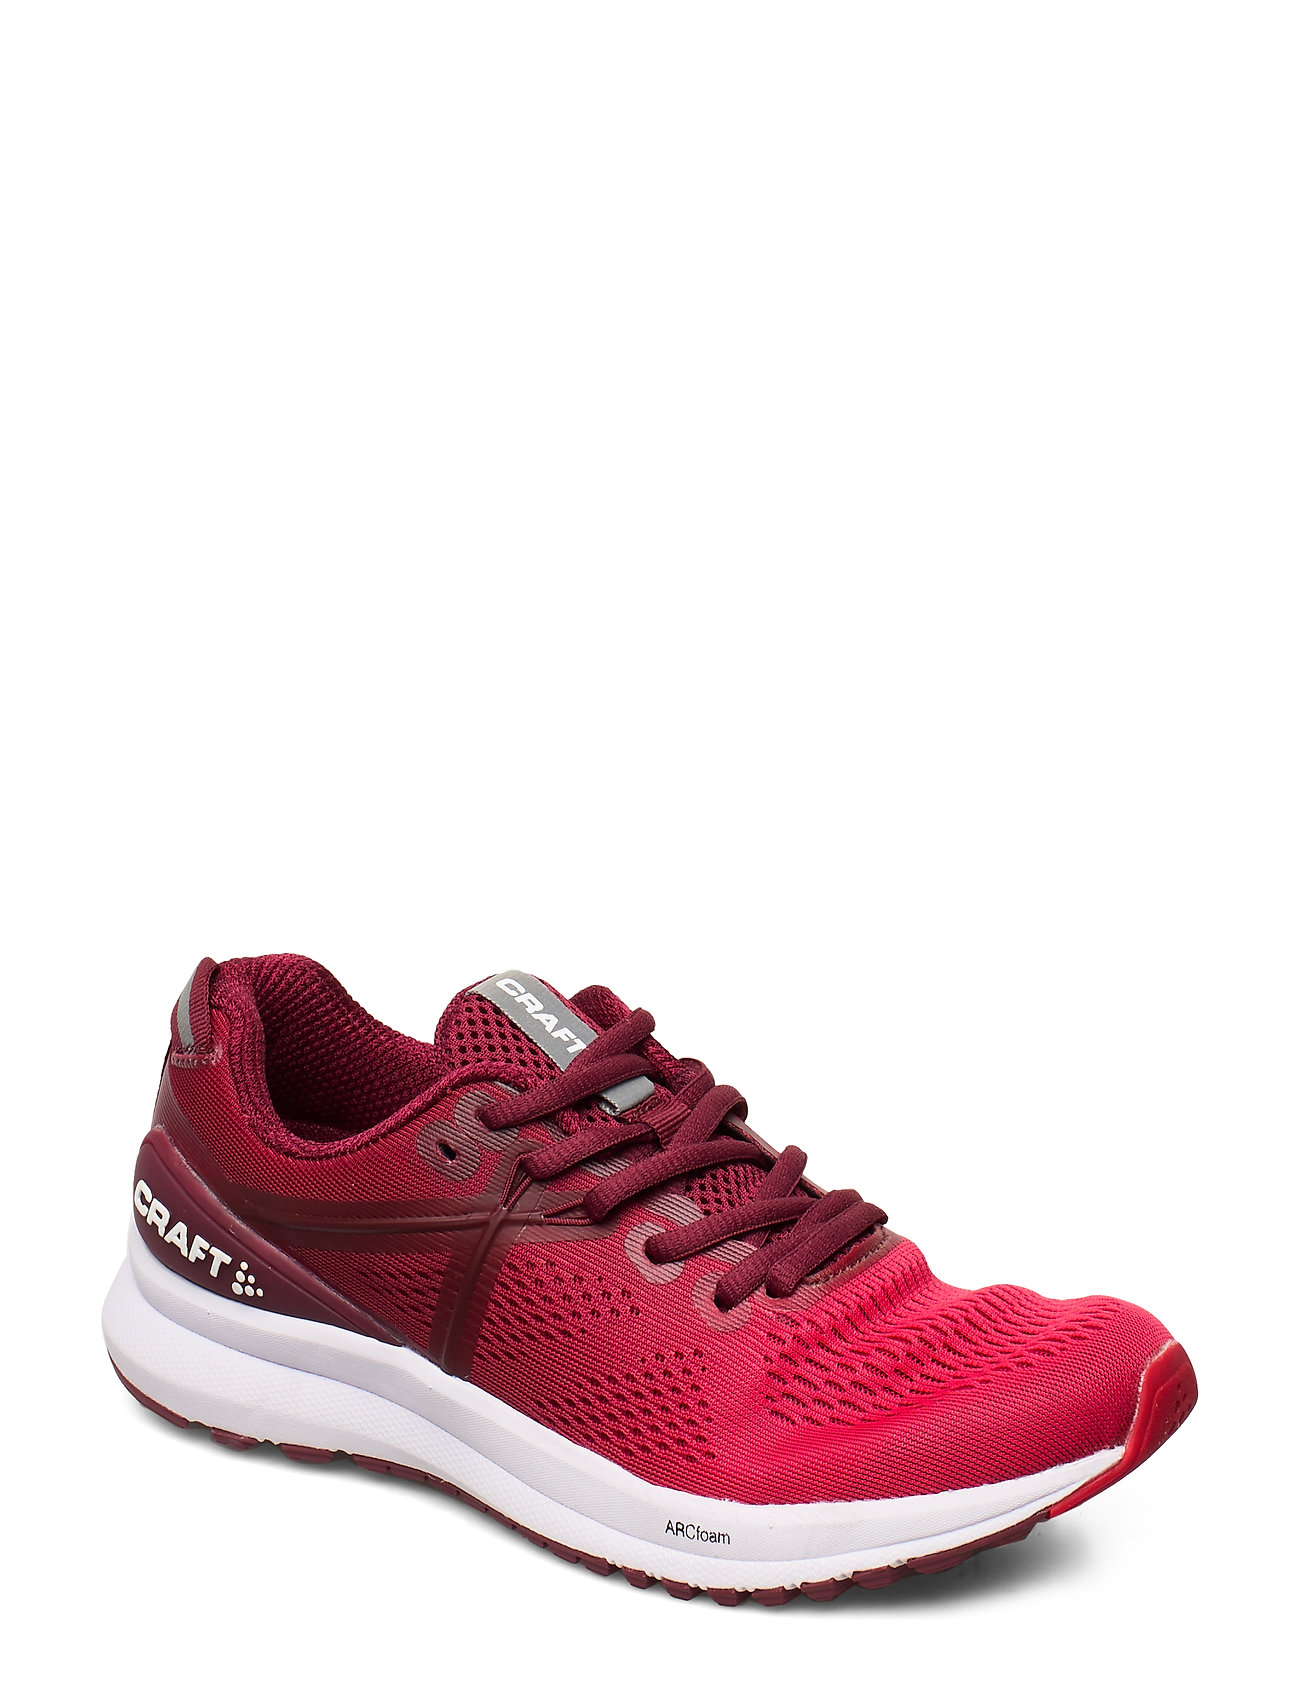 Image of Shoe X165 Engineered W Shoes Sport Shoes Running Shoes Rød Craft (3452151589)